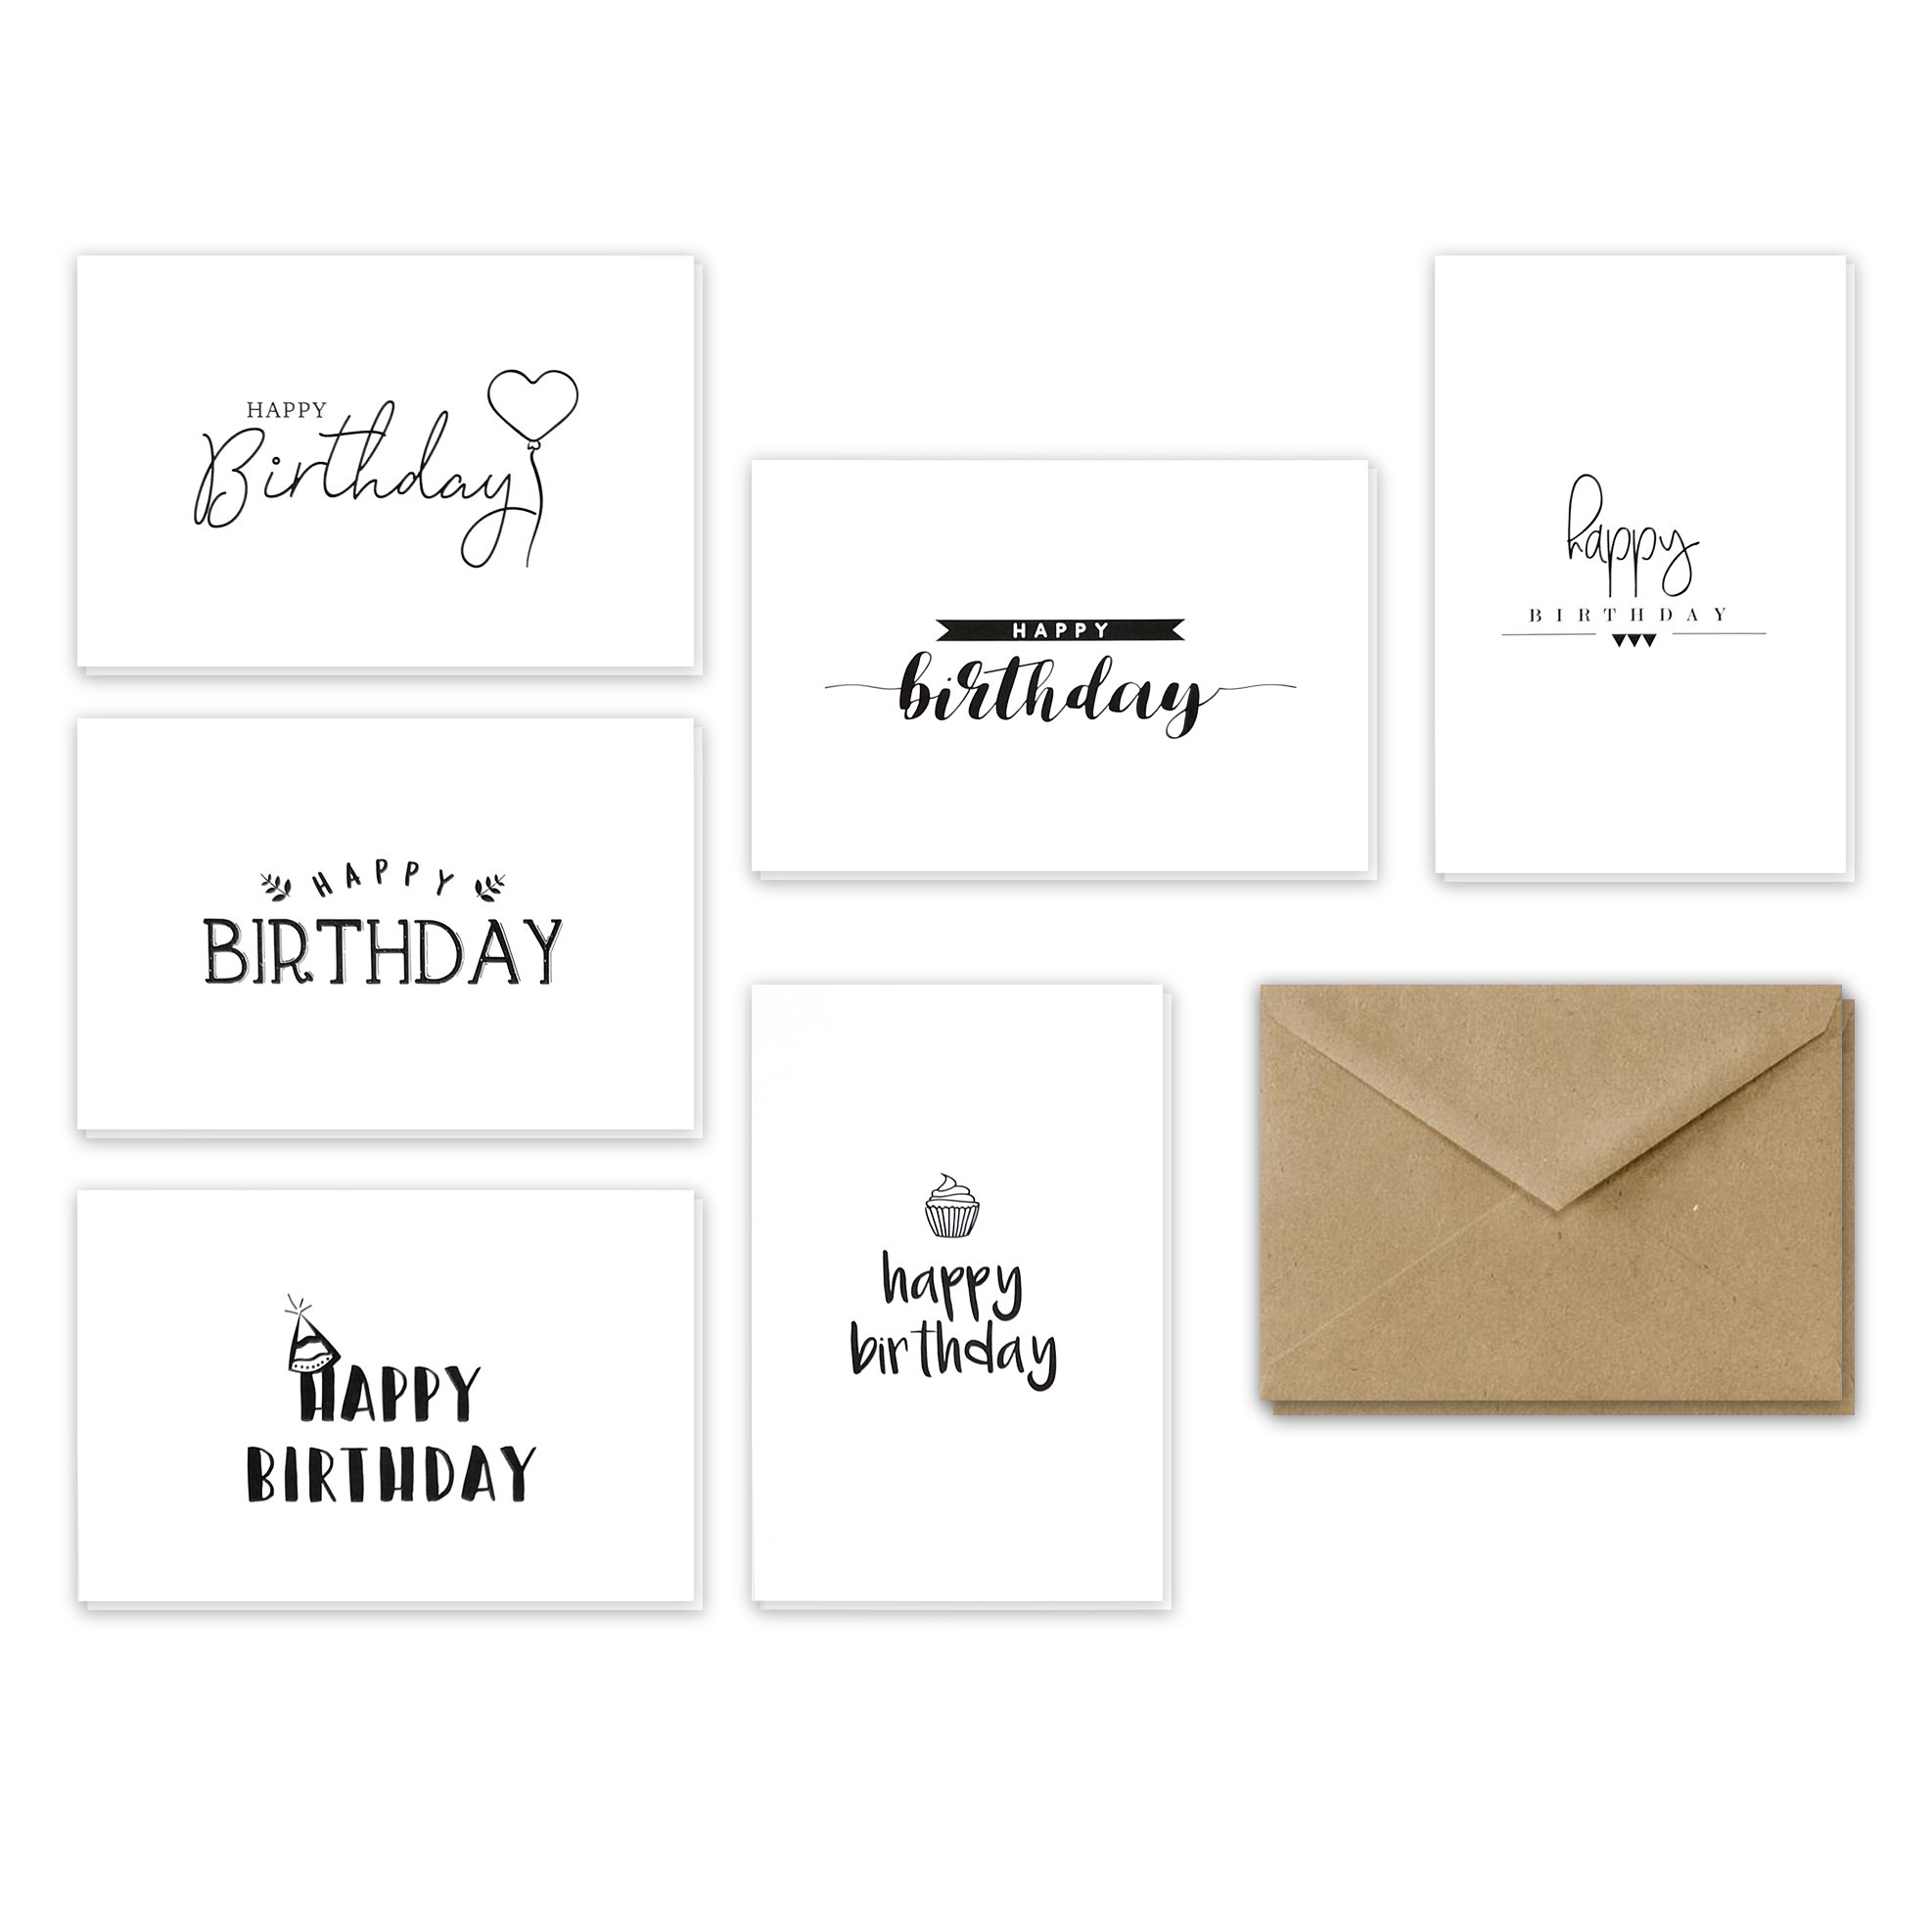 Happy Birthday Greeting Cards Handwritten Assortment 4x6 Inches Assorted Variety